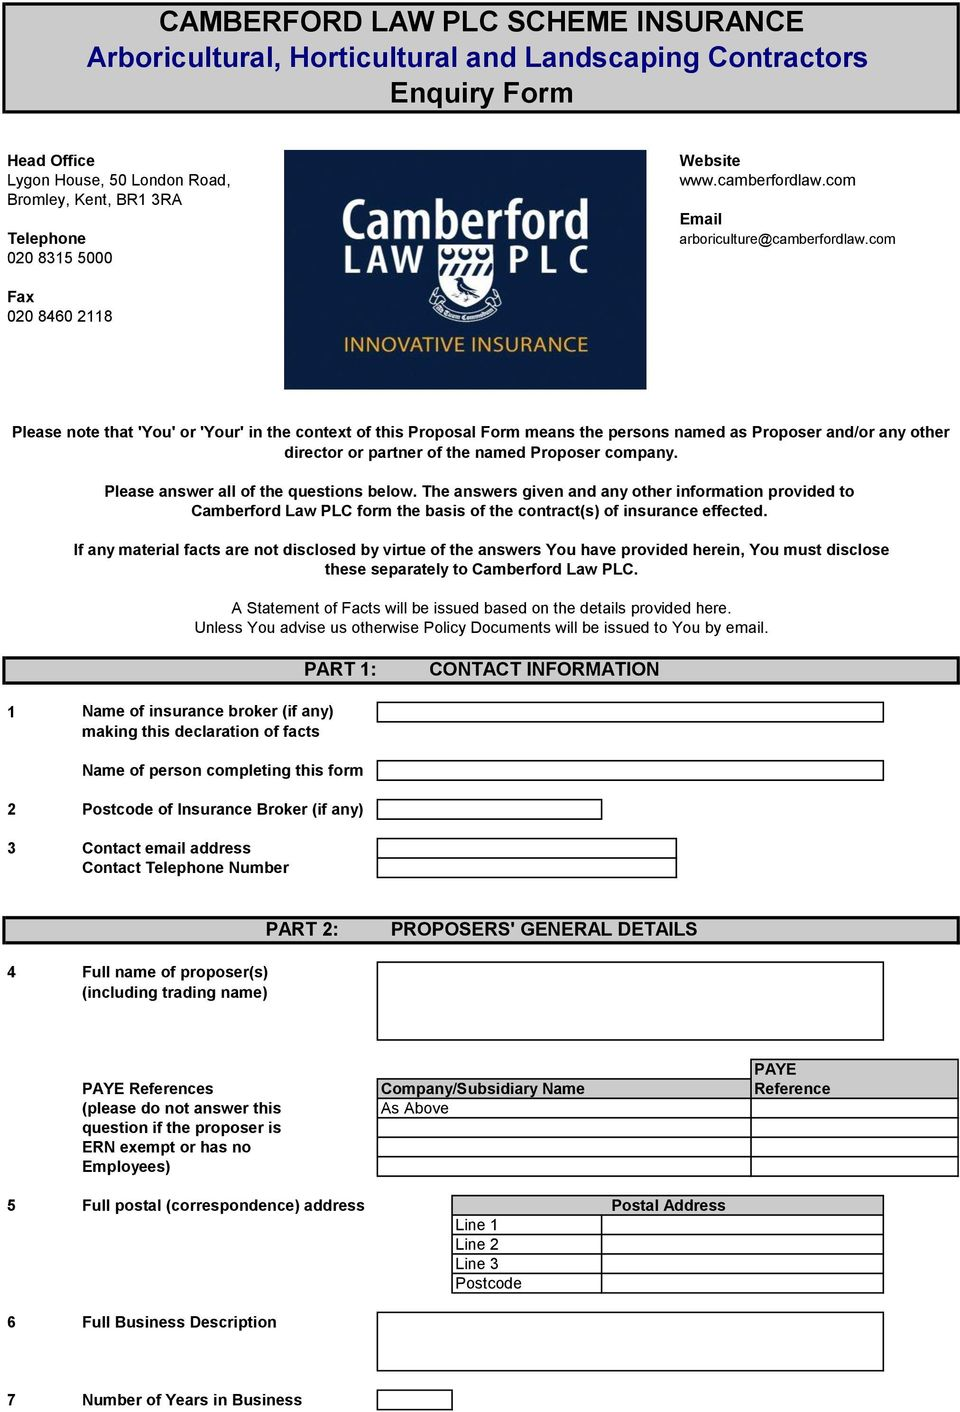 com Fax 020 8460 2118 Please note that 'You' or 'Your' in the context of this Proposal Form means the persons named as Proposer and/or any other director or partner of the named Proposer company.